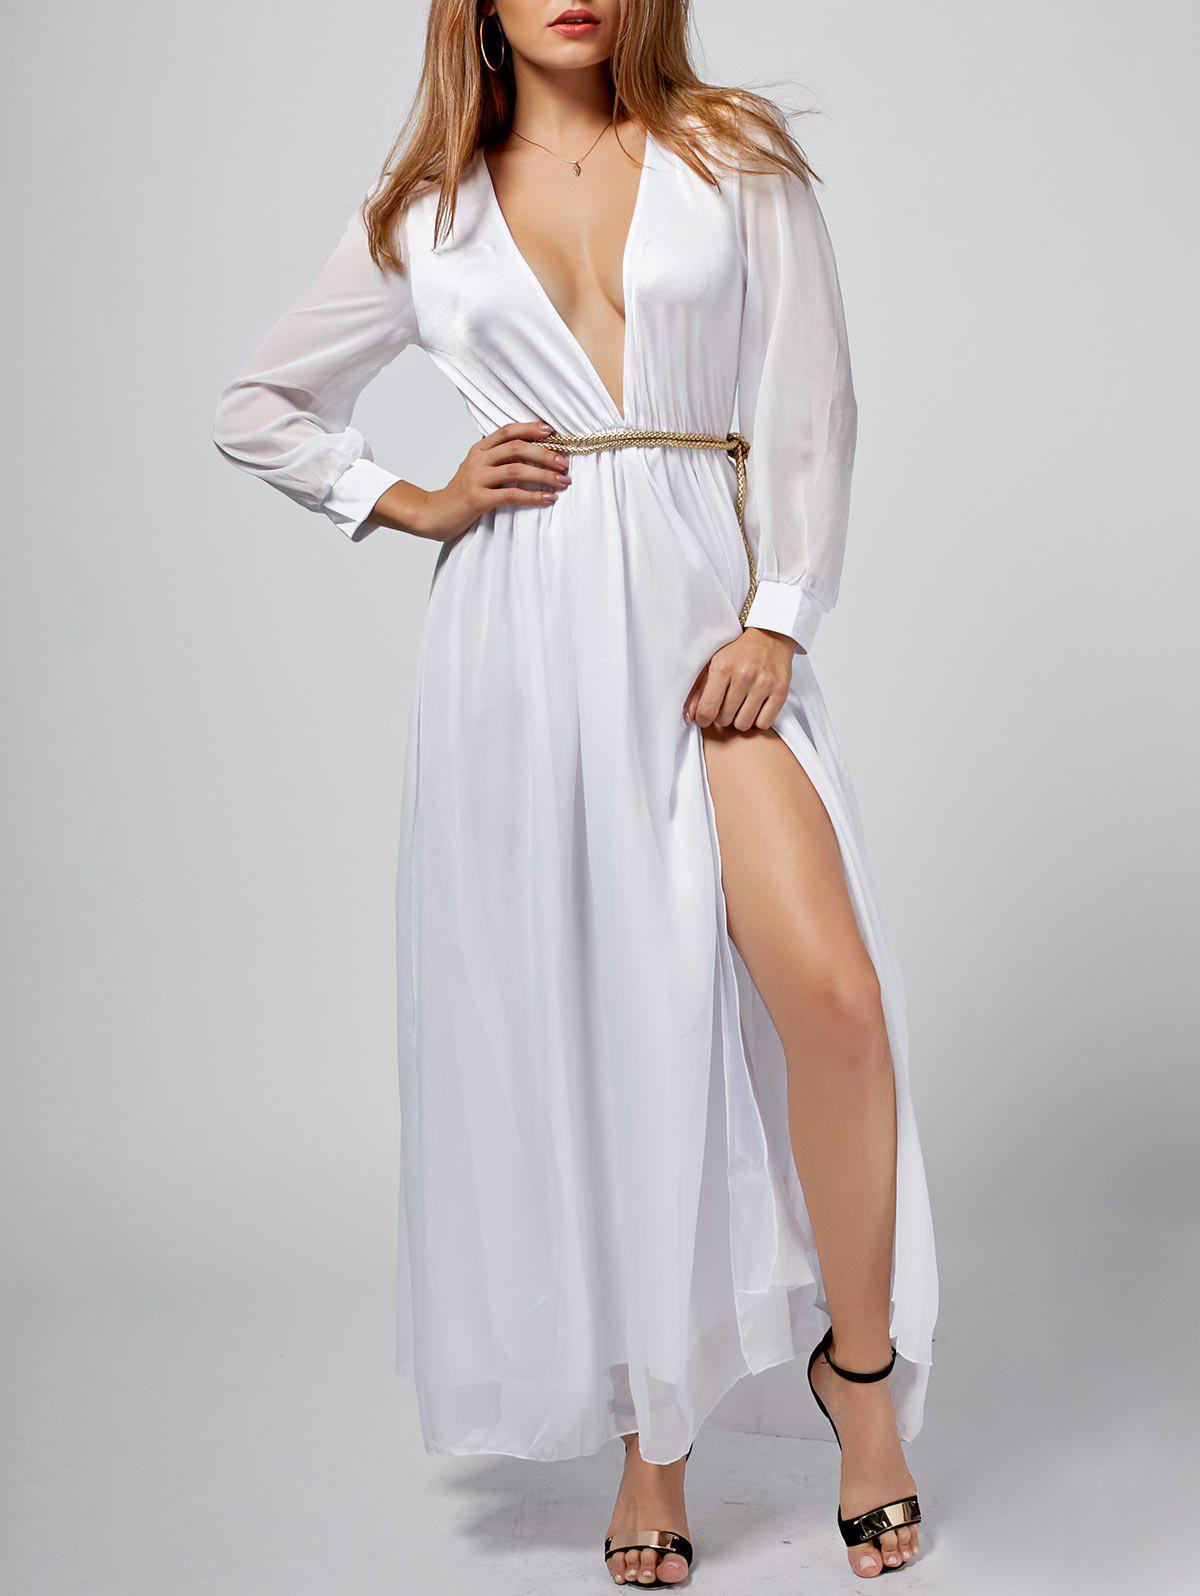 V-Neck Long Sleeve Off-The-Breast Dress - WHITE M